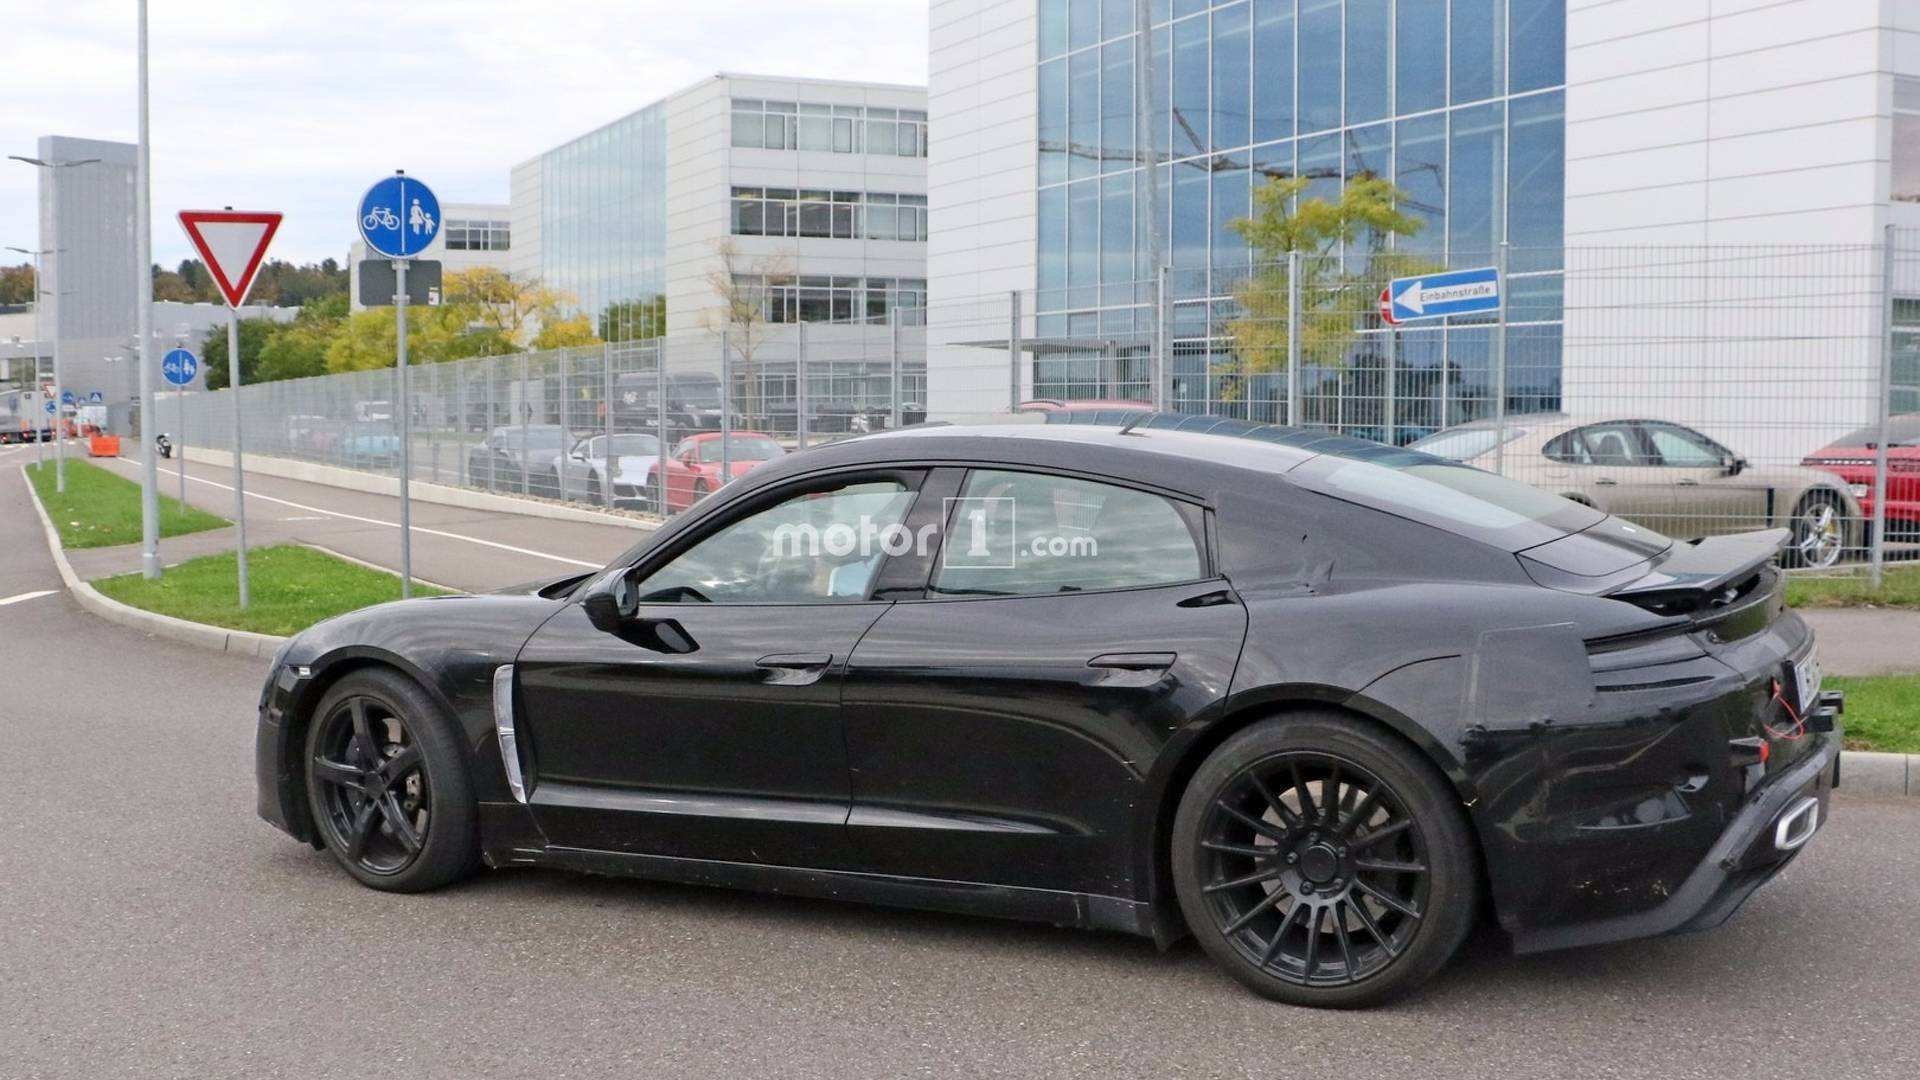 87 All New 2020 Porsche Mission E Electric Sedan Spied Testing Alongside Teslas Exterior and Interior with 2020 Porsche Mission E Electric Sedan Spied Testing Alongside Teslas